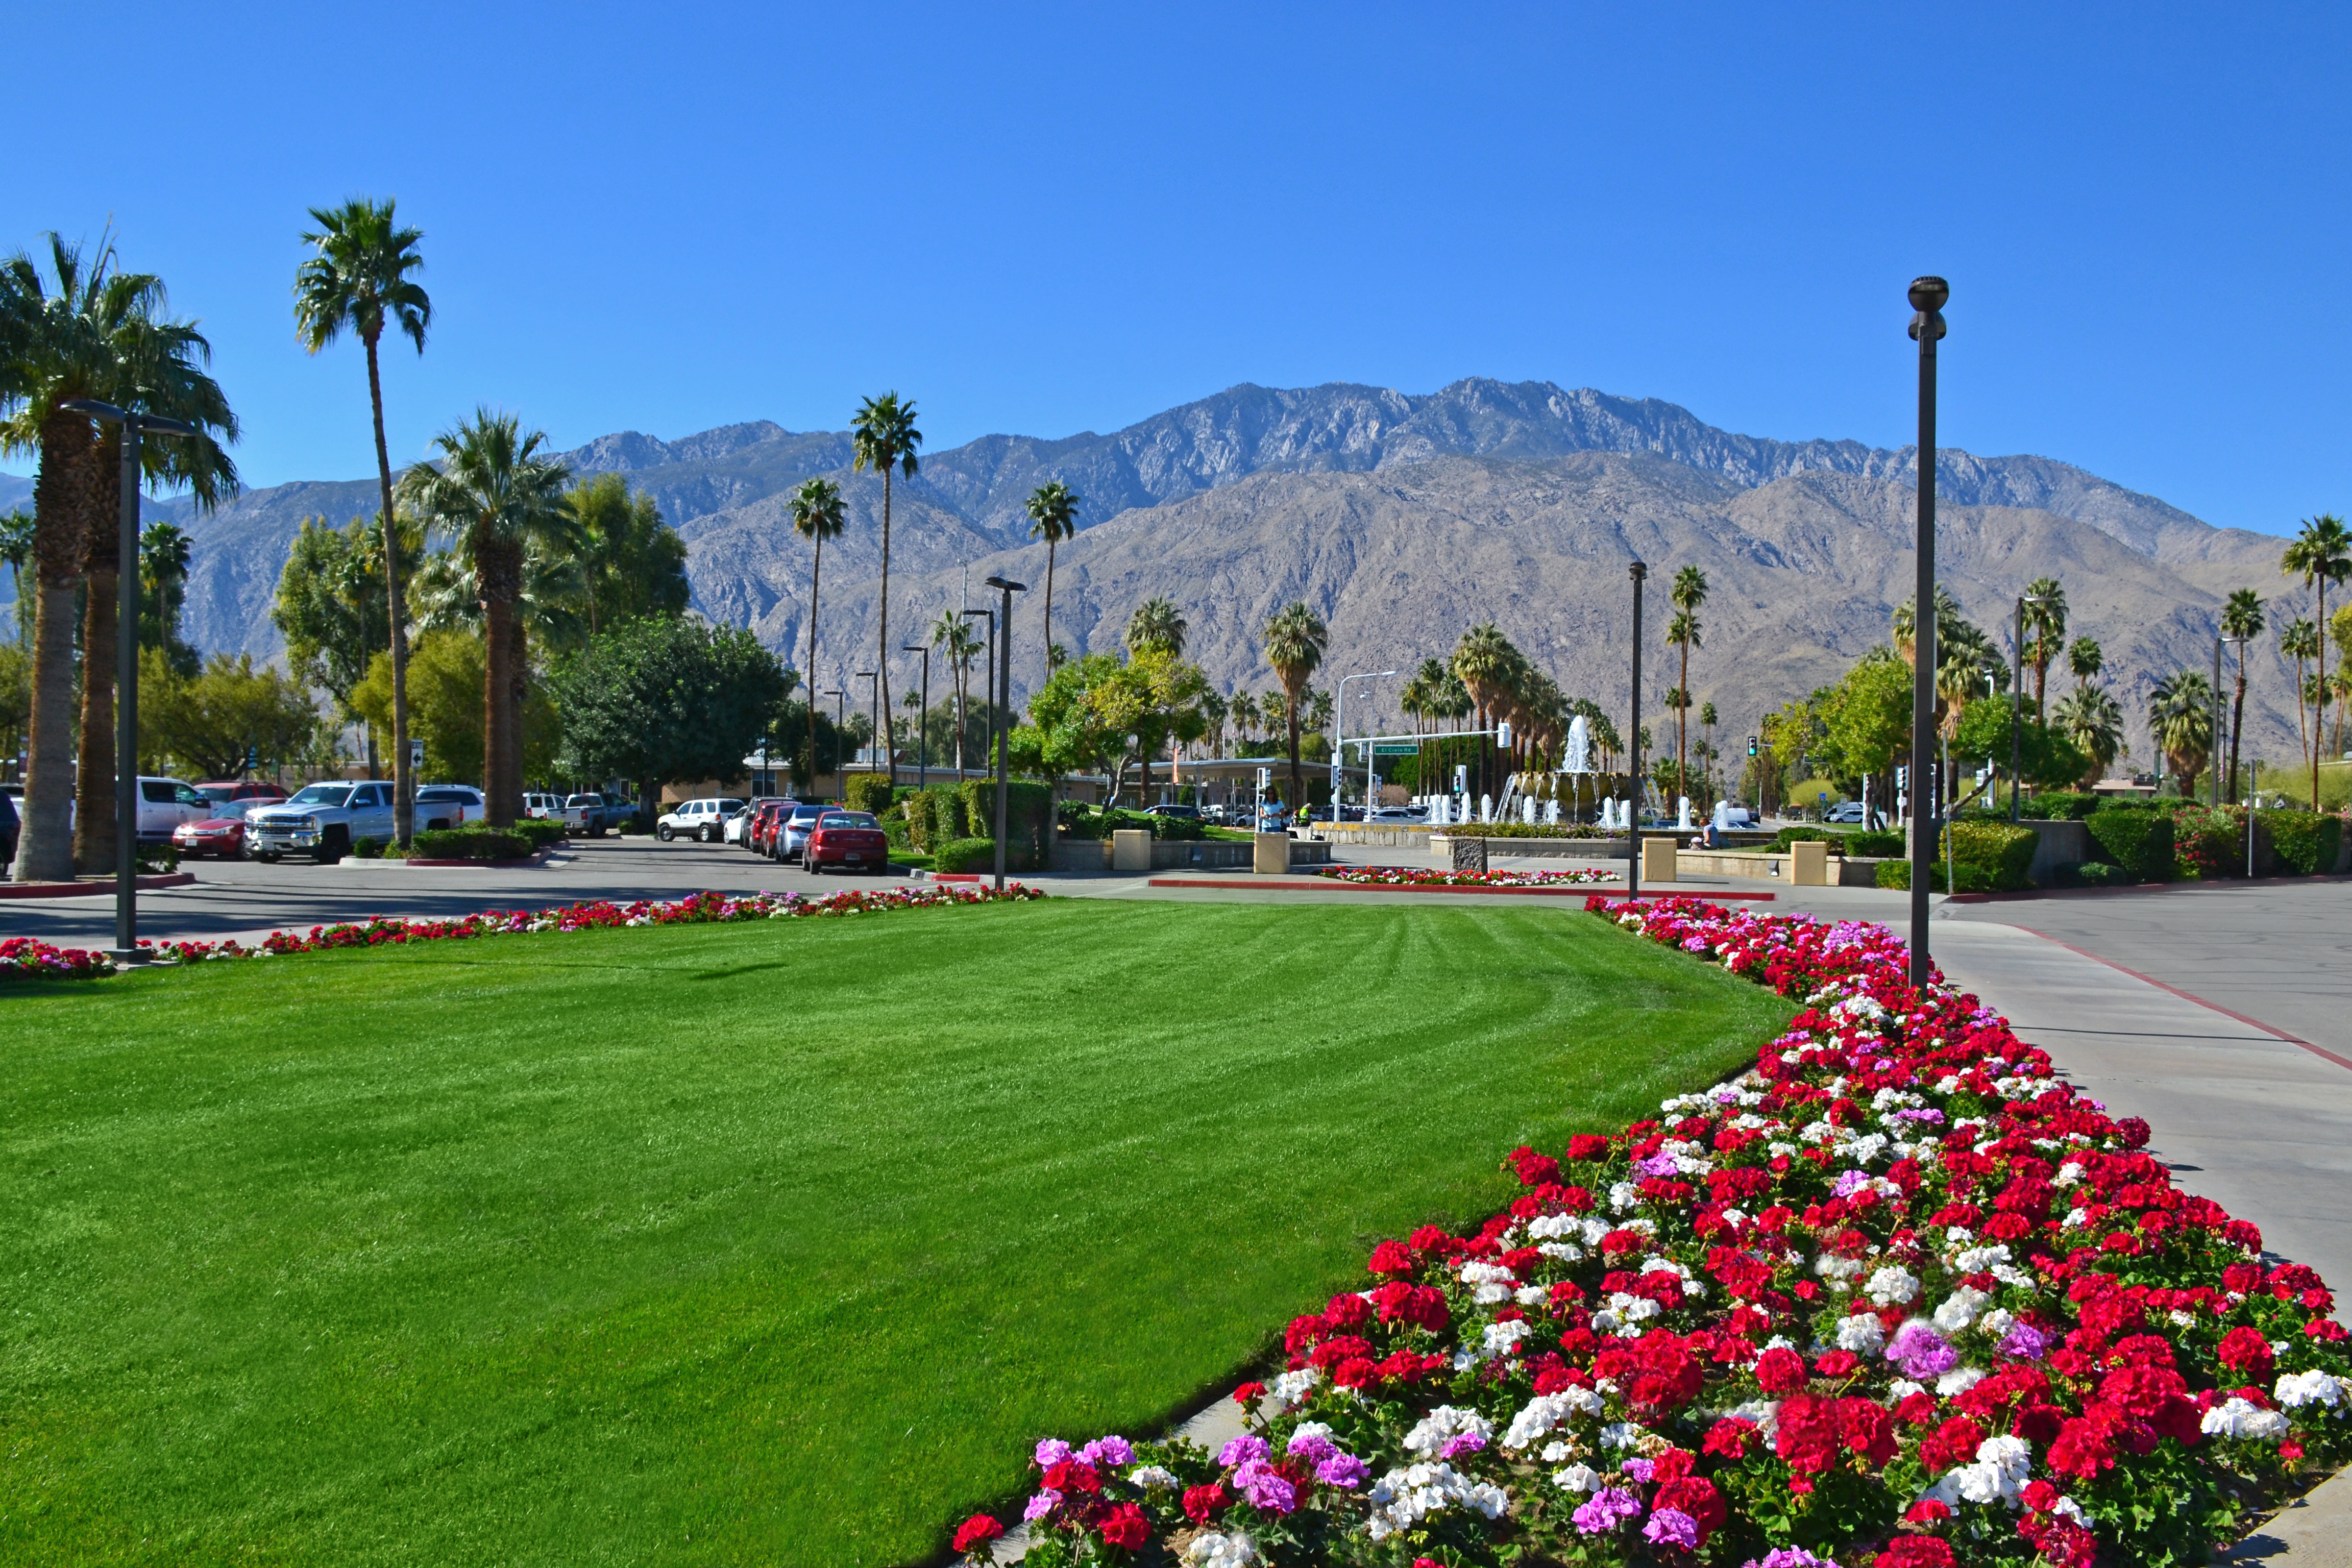 Palm Springs Airport Flowers Turf Mountains 0966 Mariposa